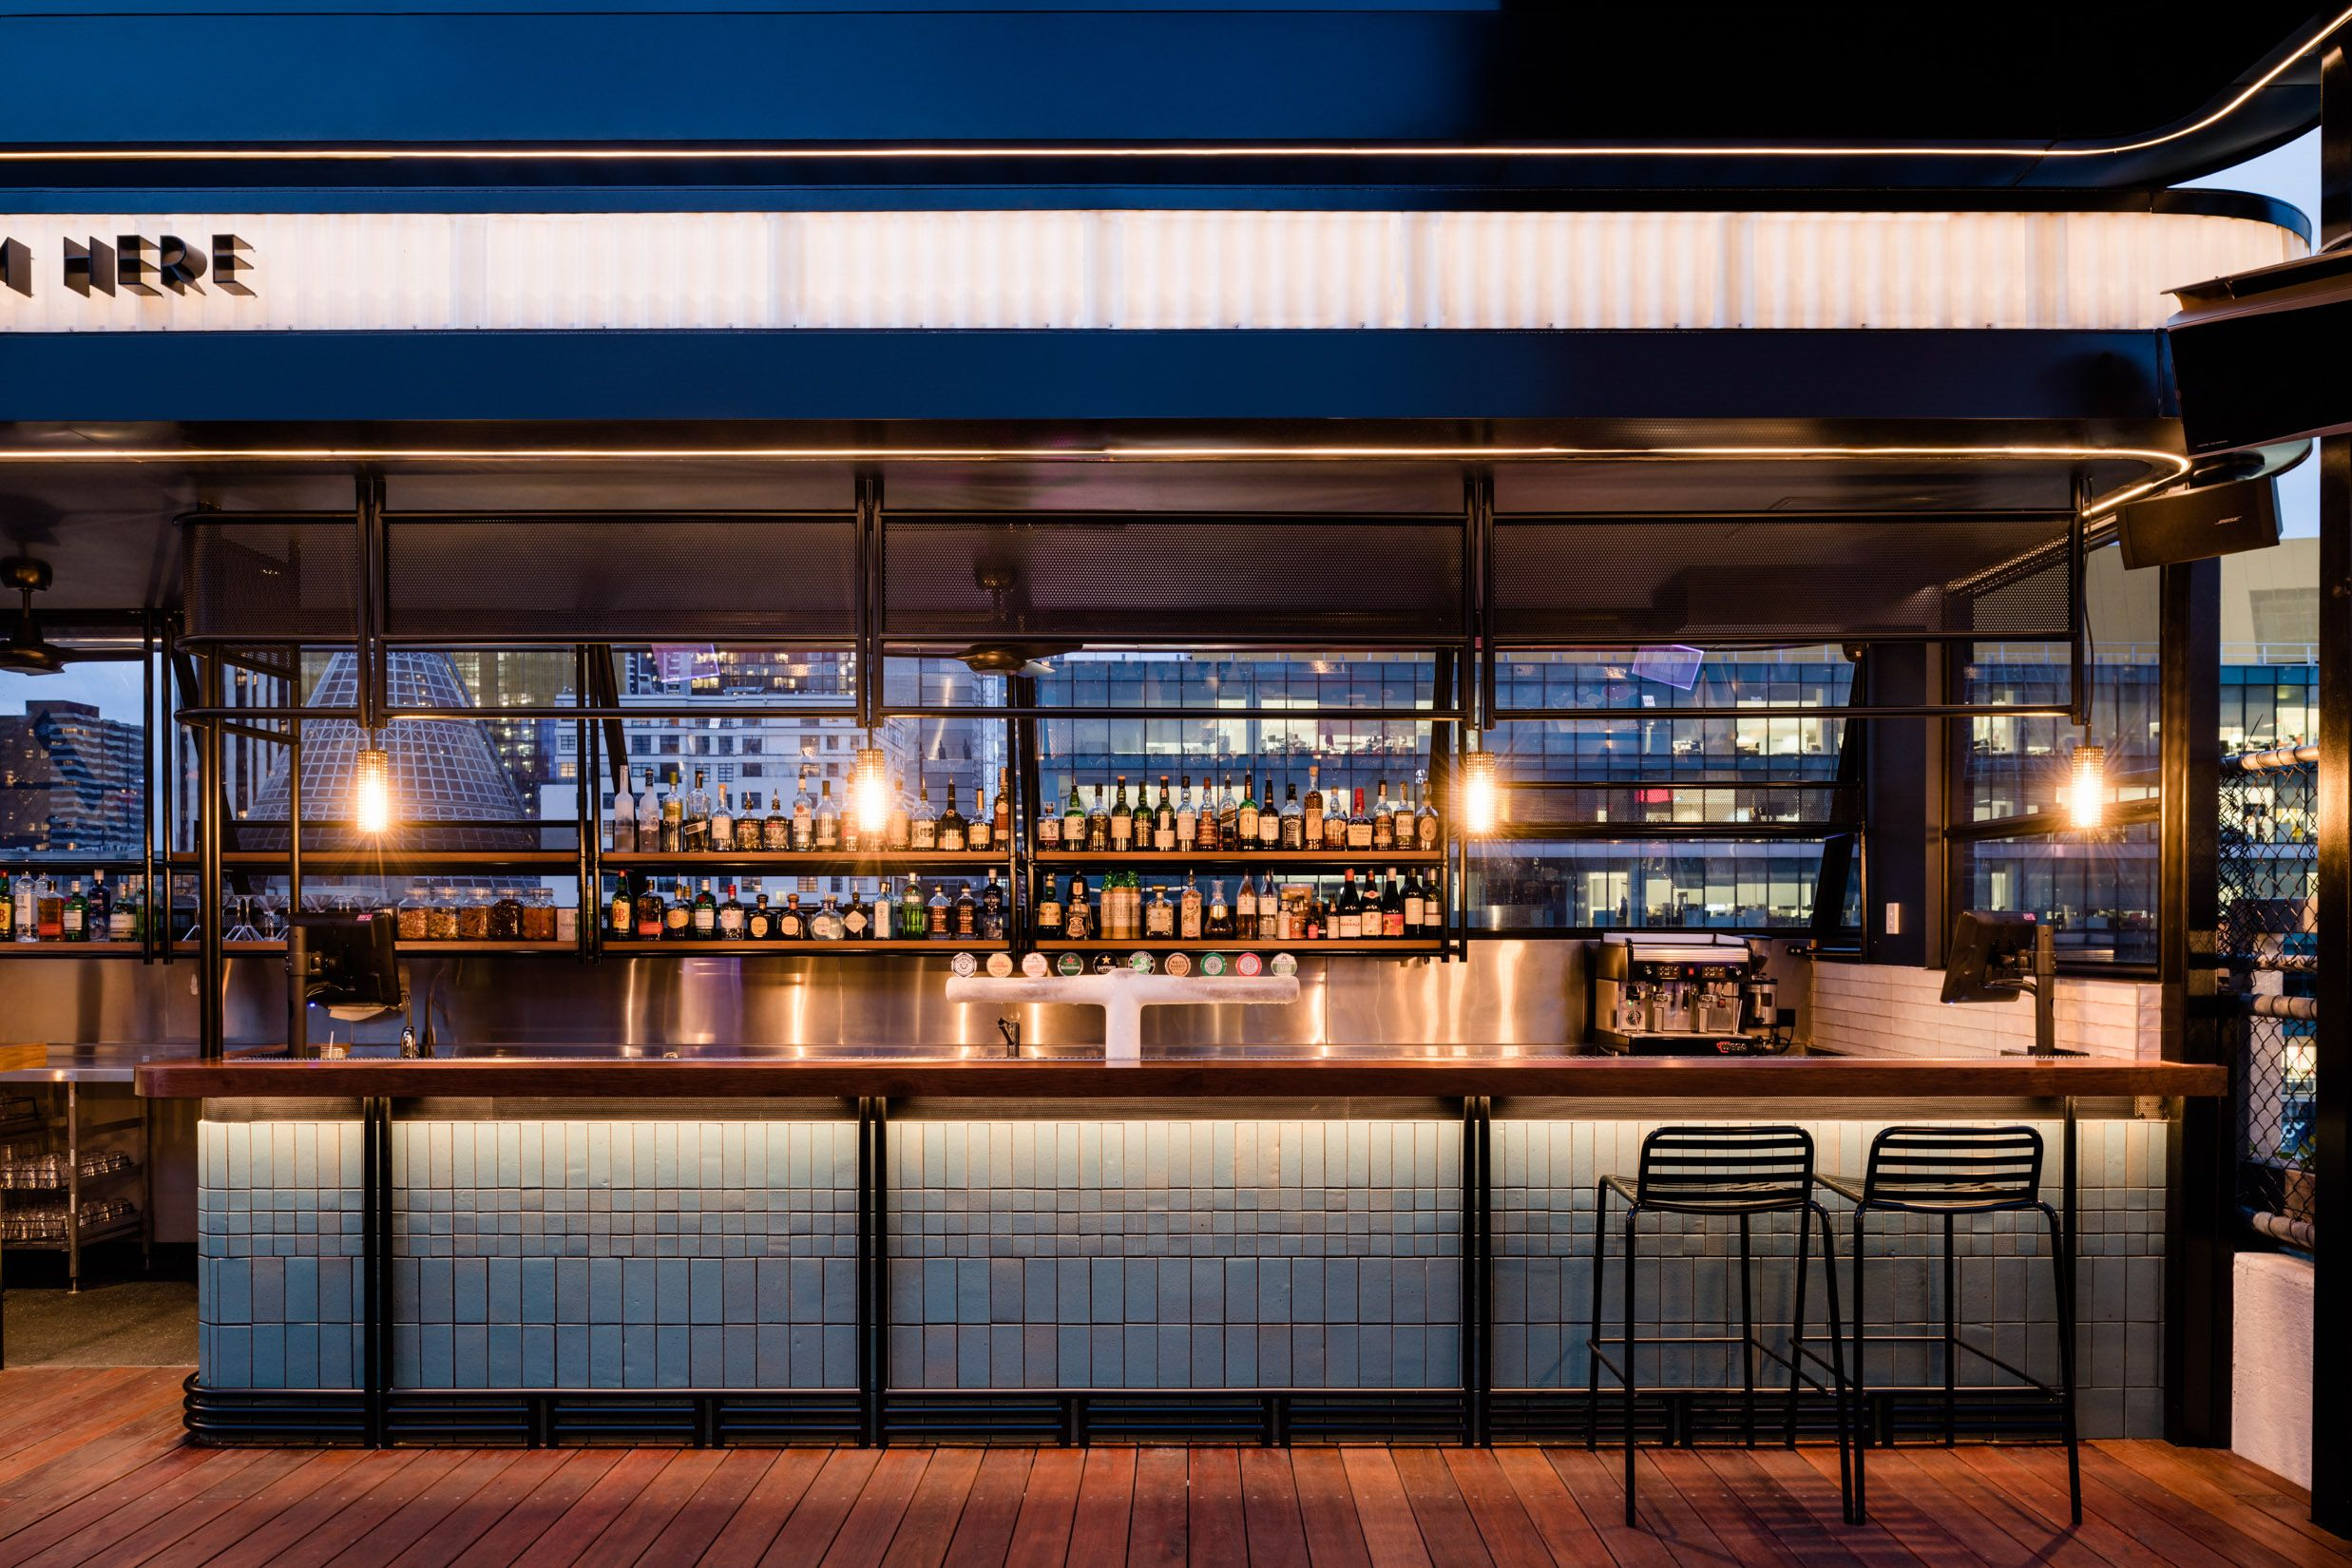 Technē Rework Rooftop Cinema Australian Design Review In